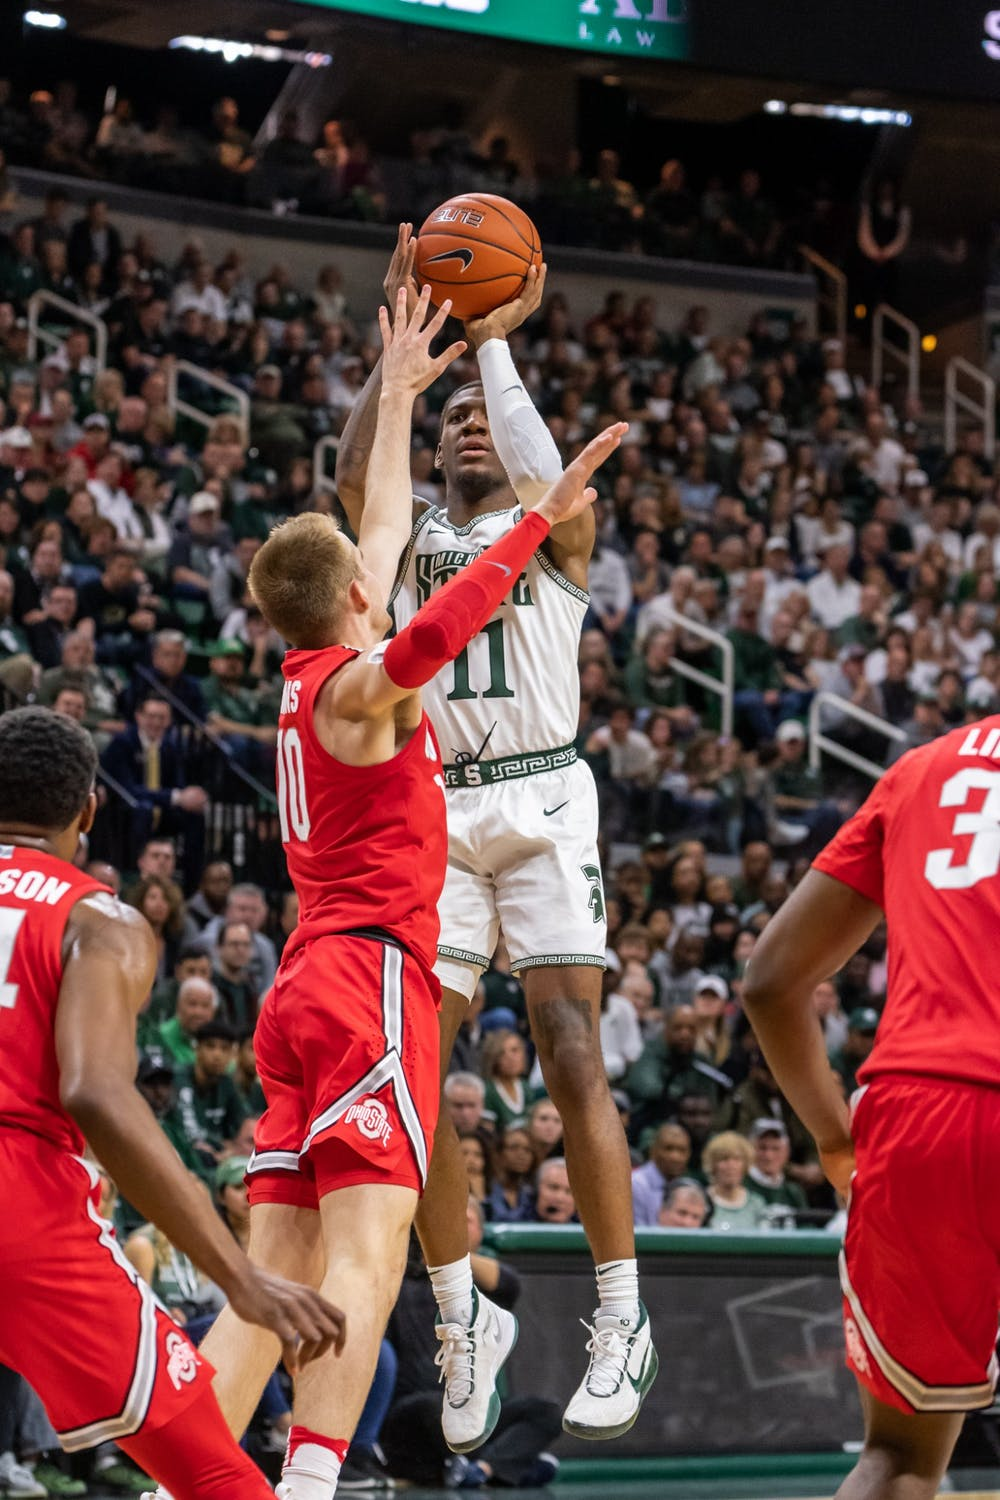 Sophomore forward Aaron Henry (11) shoots over Ohio State's Justin Ahrens (10). The Spartans defeated the Buckeyes, 80-69, at the Breslin Student Events Center on March 8, 2020.